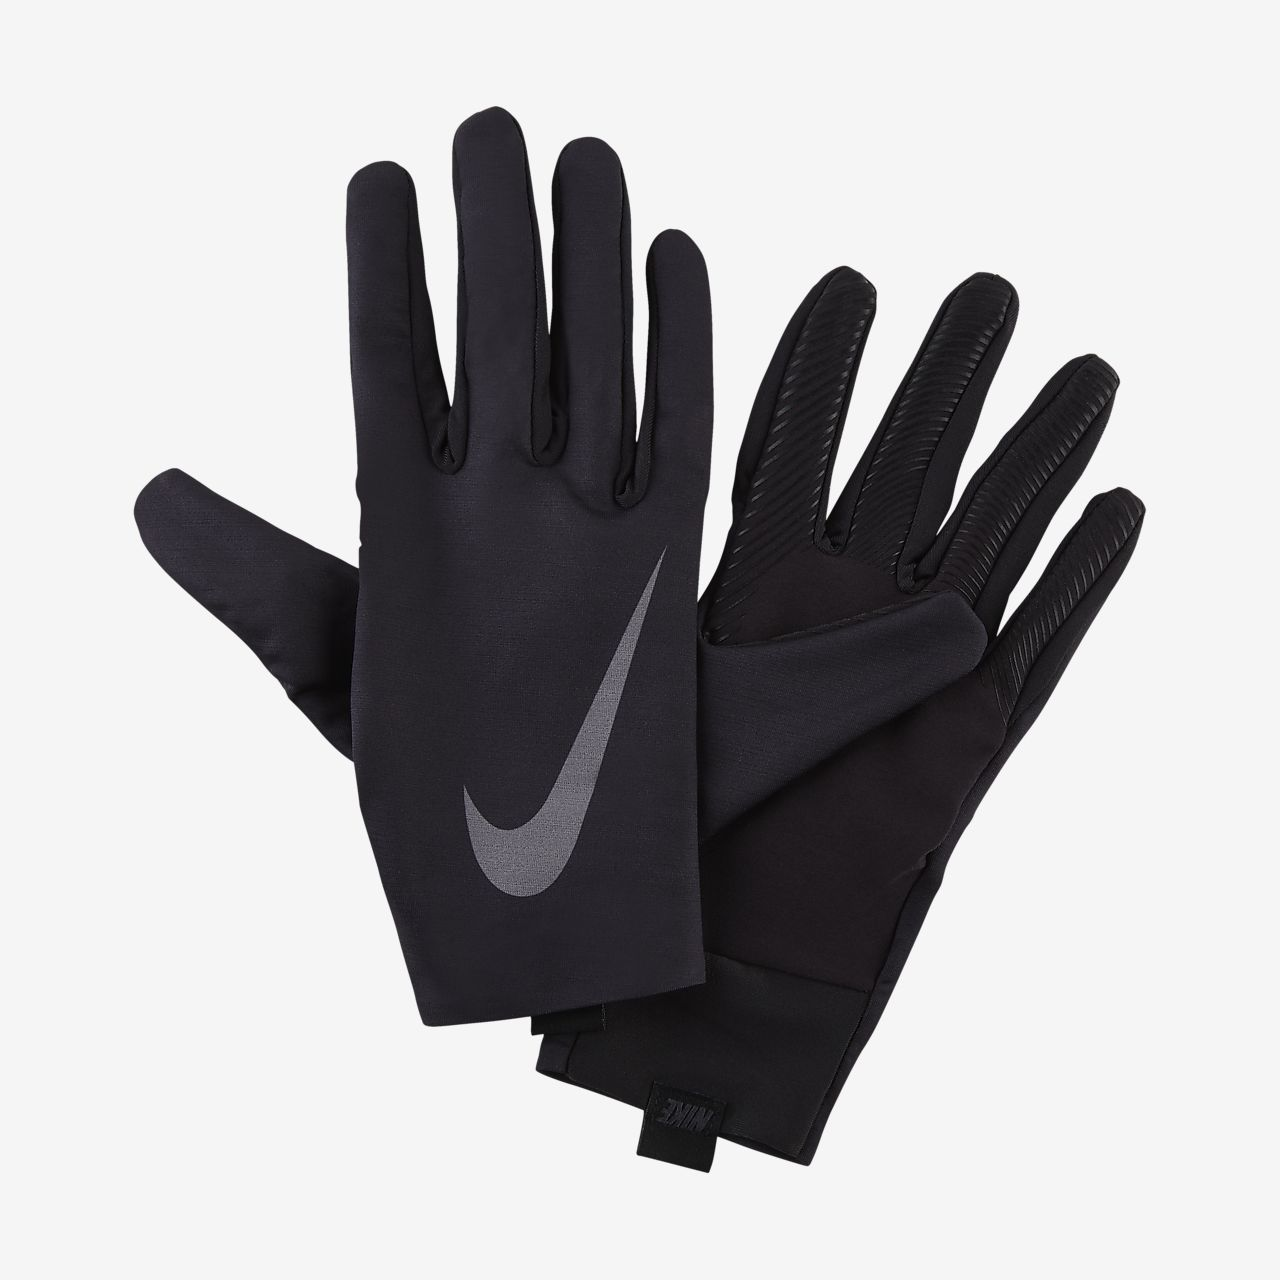 Nike Pro Warm Liner Men's Training Gloves